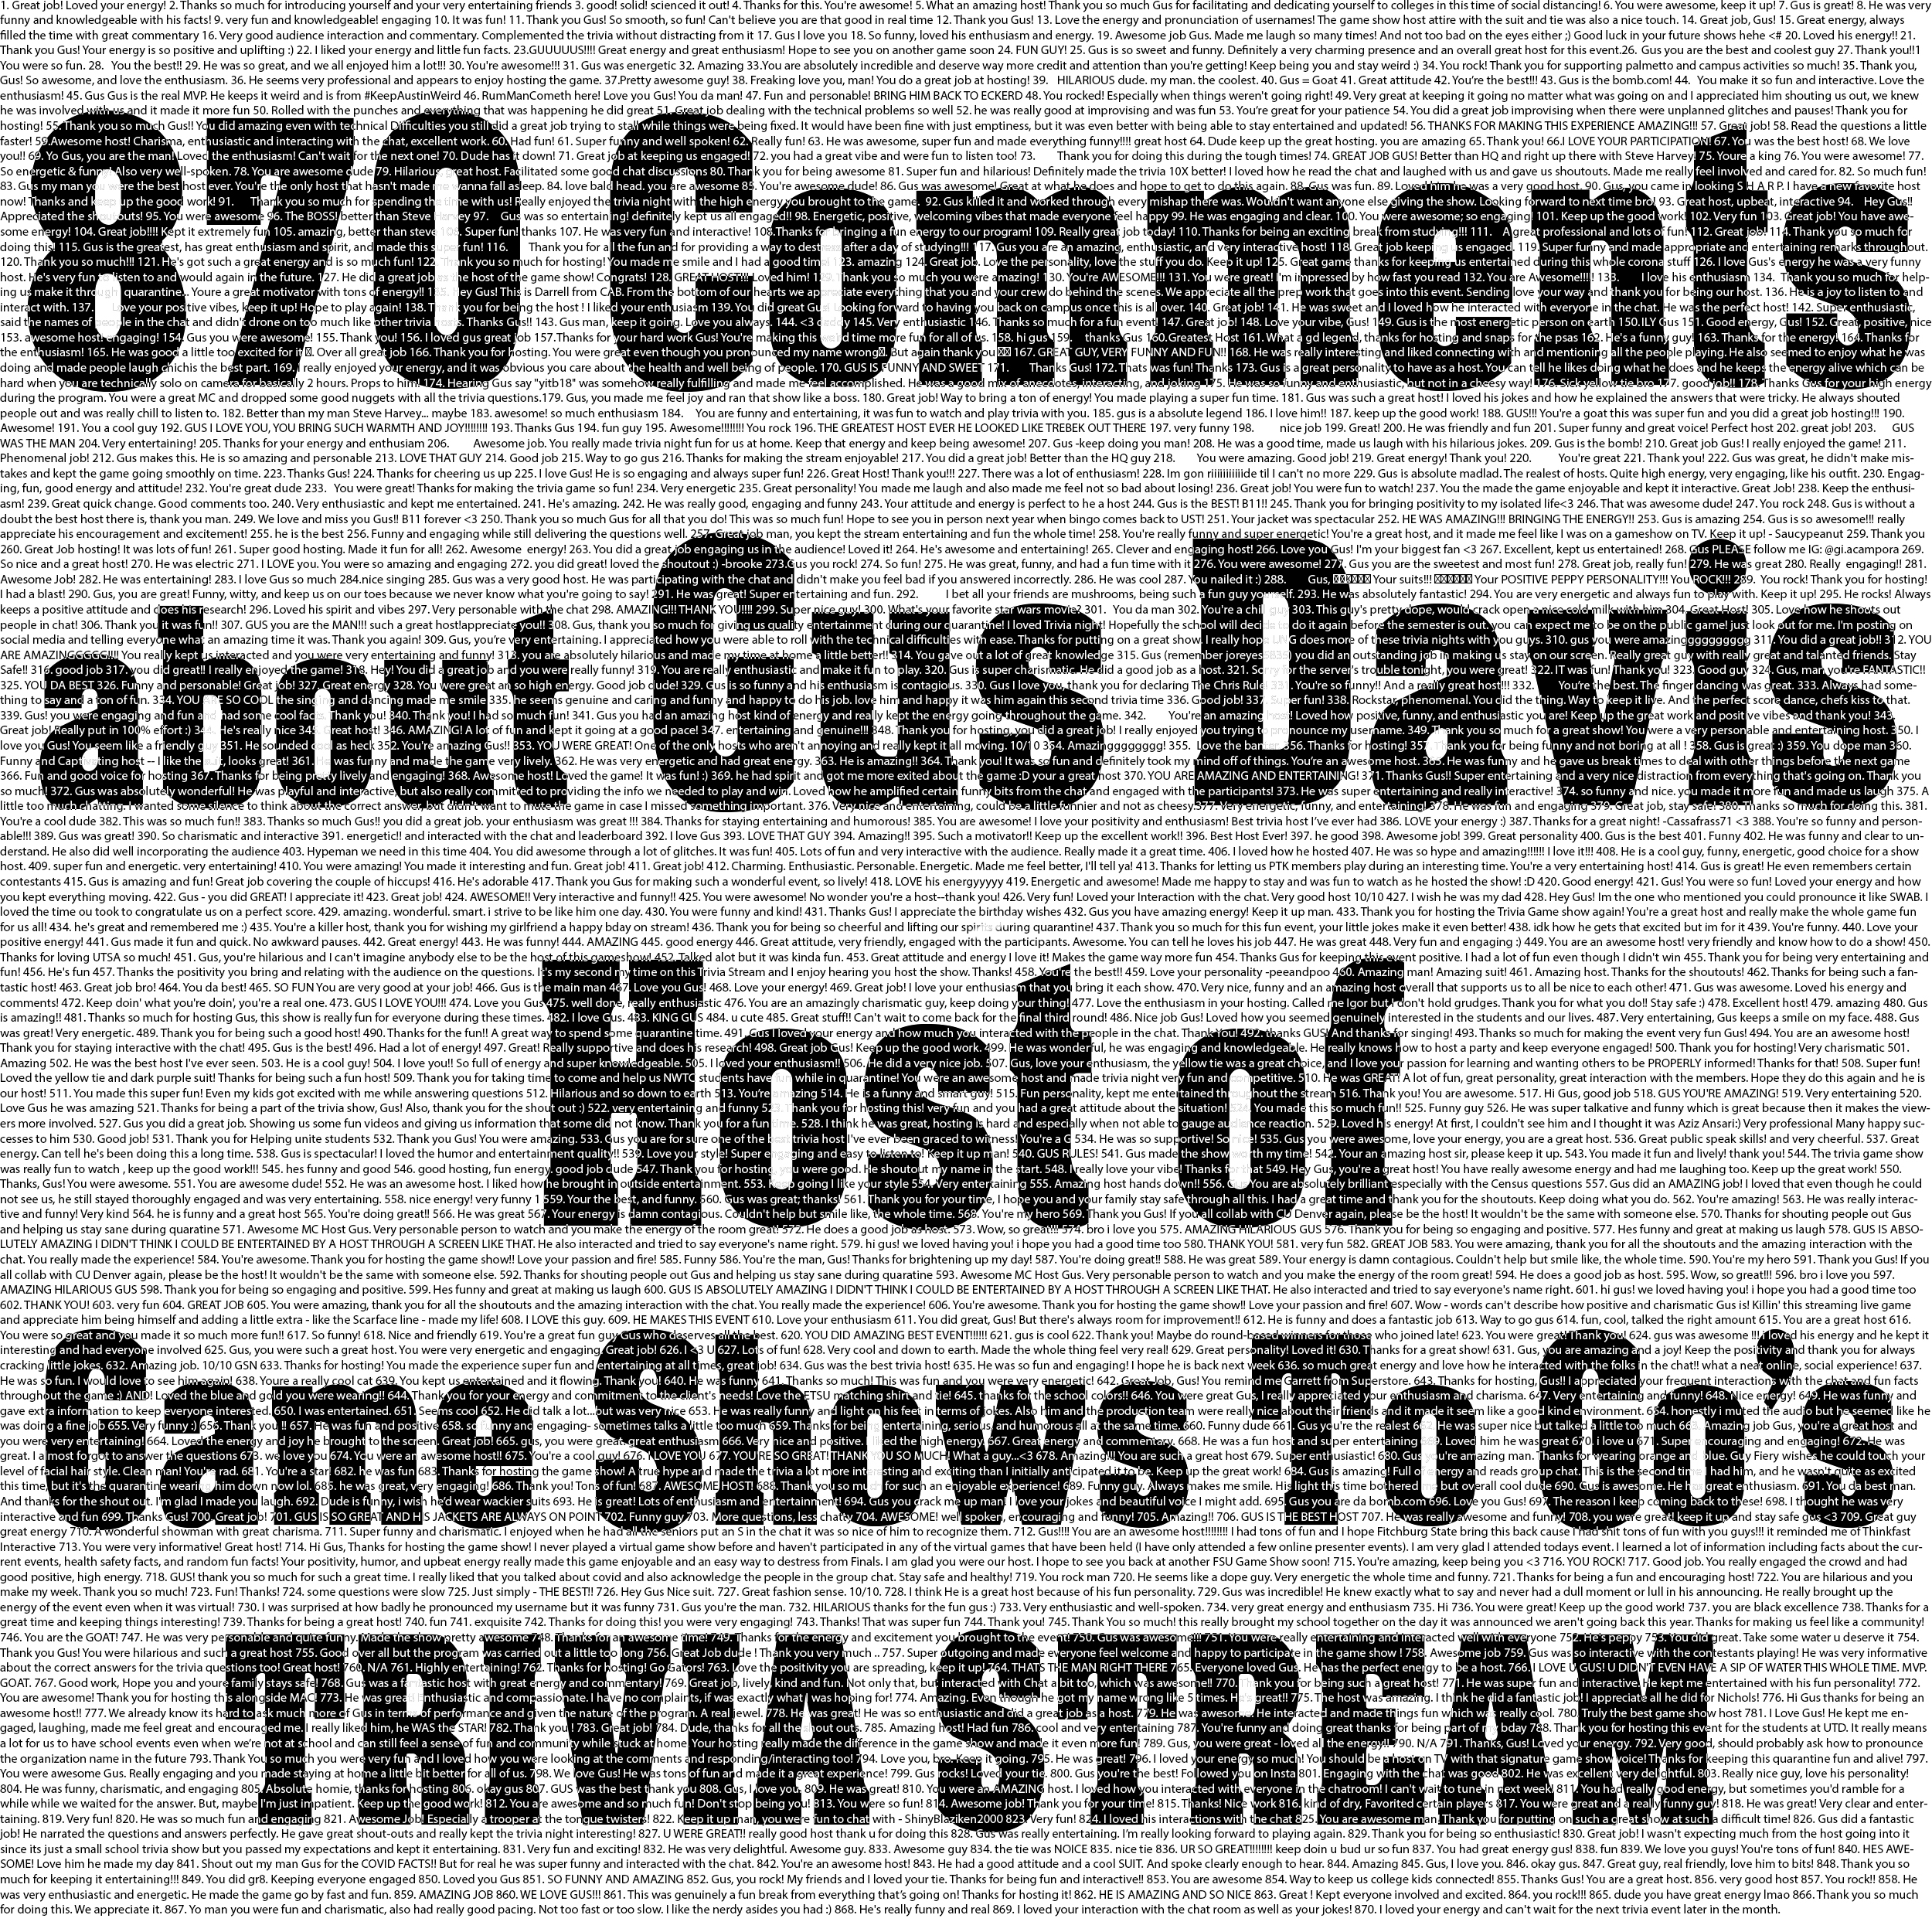 870 comments about Virtual Game Show Host Gus Davis